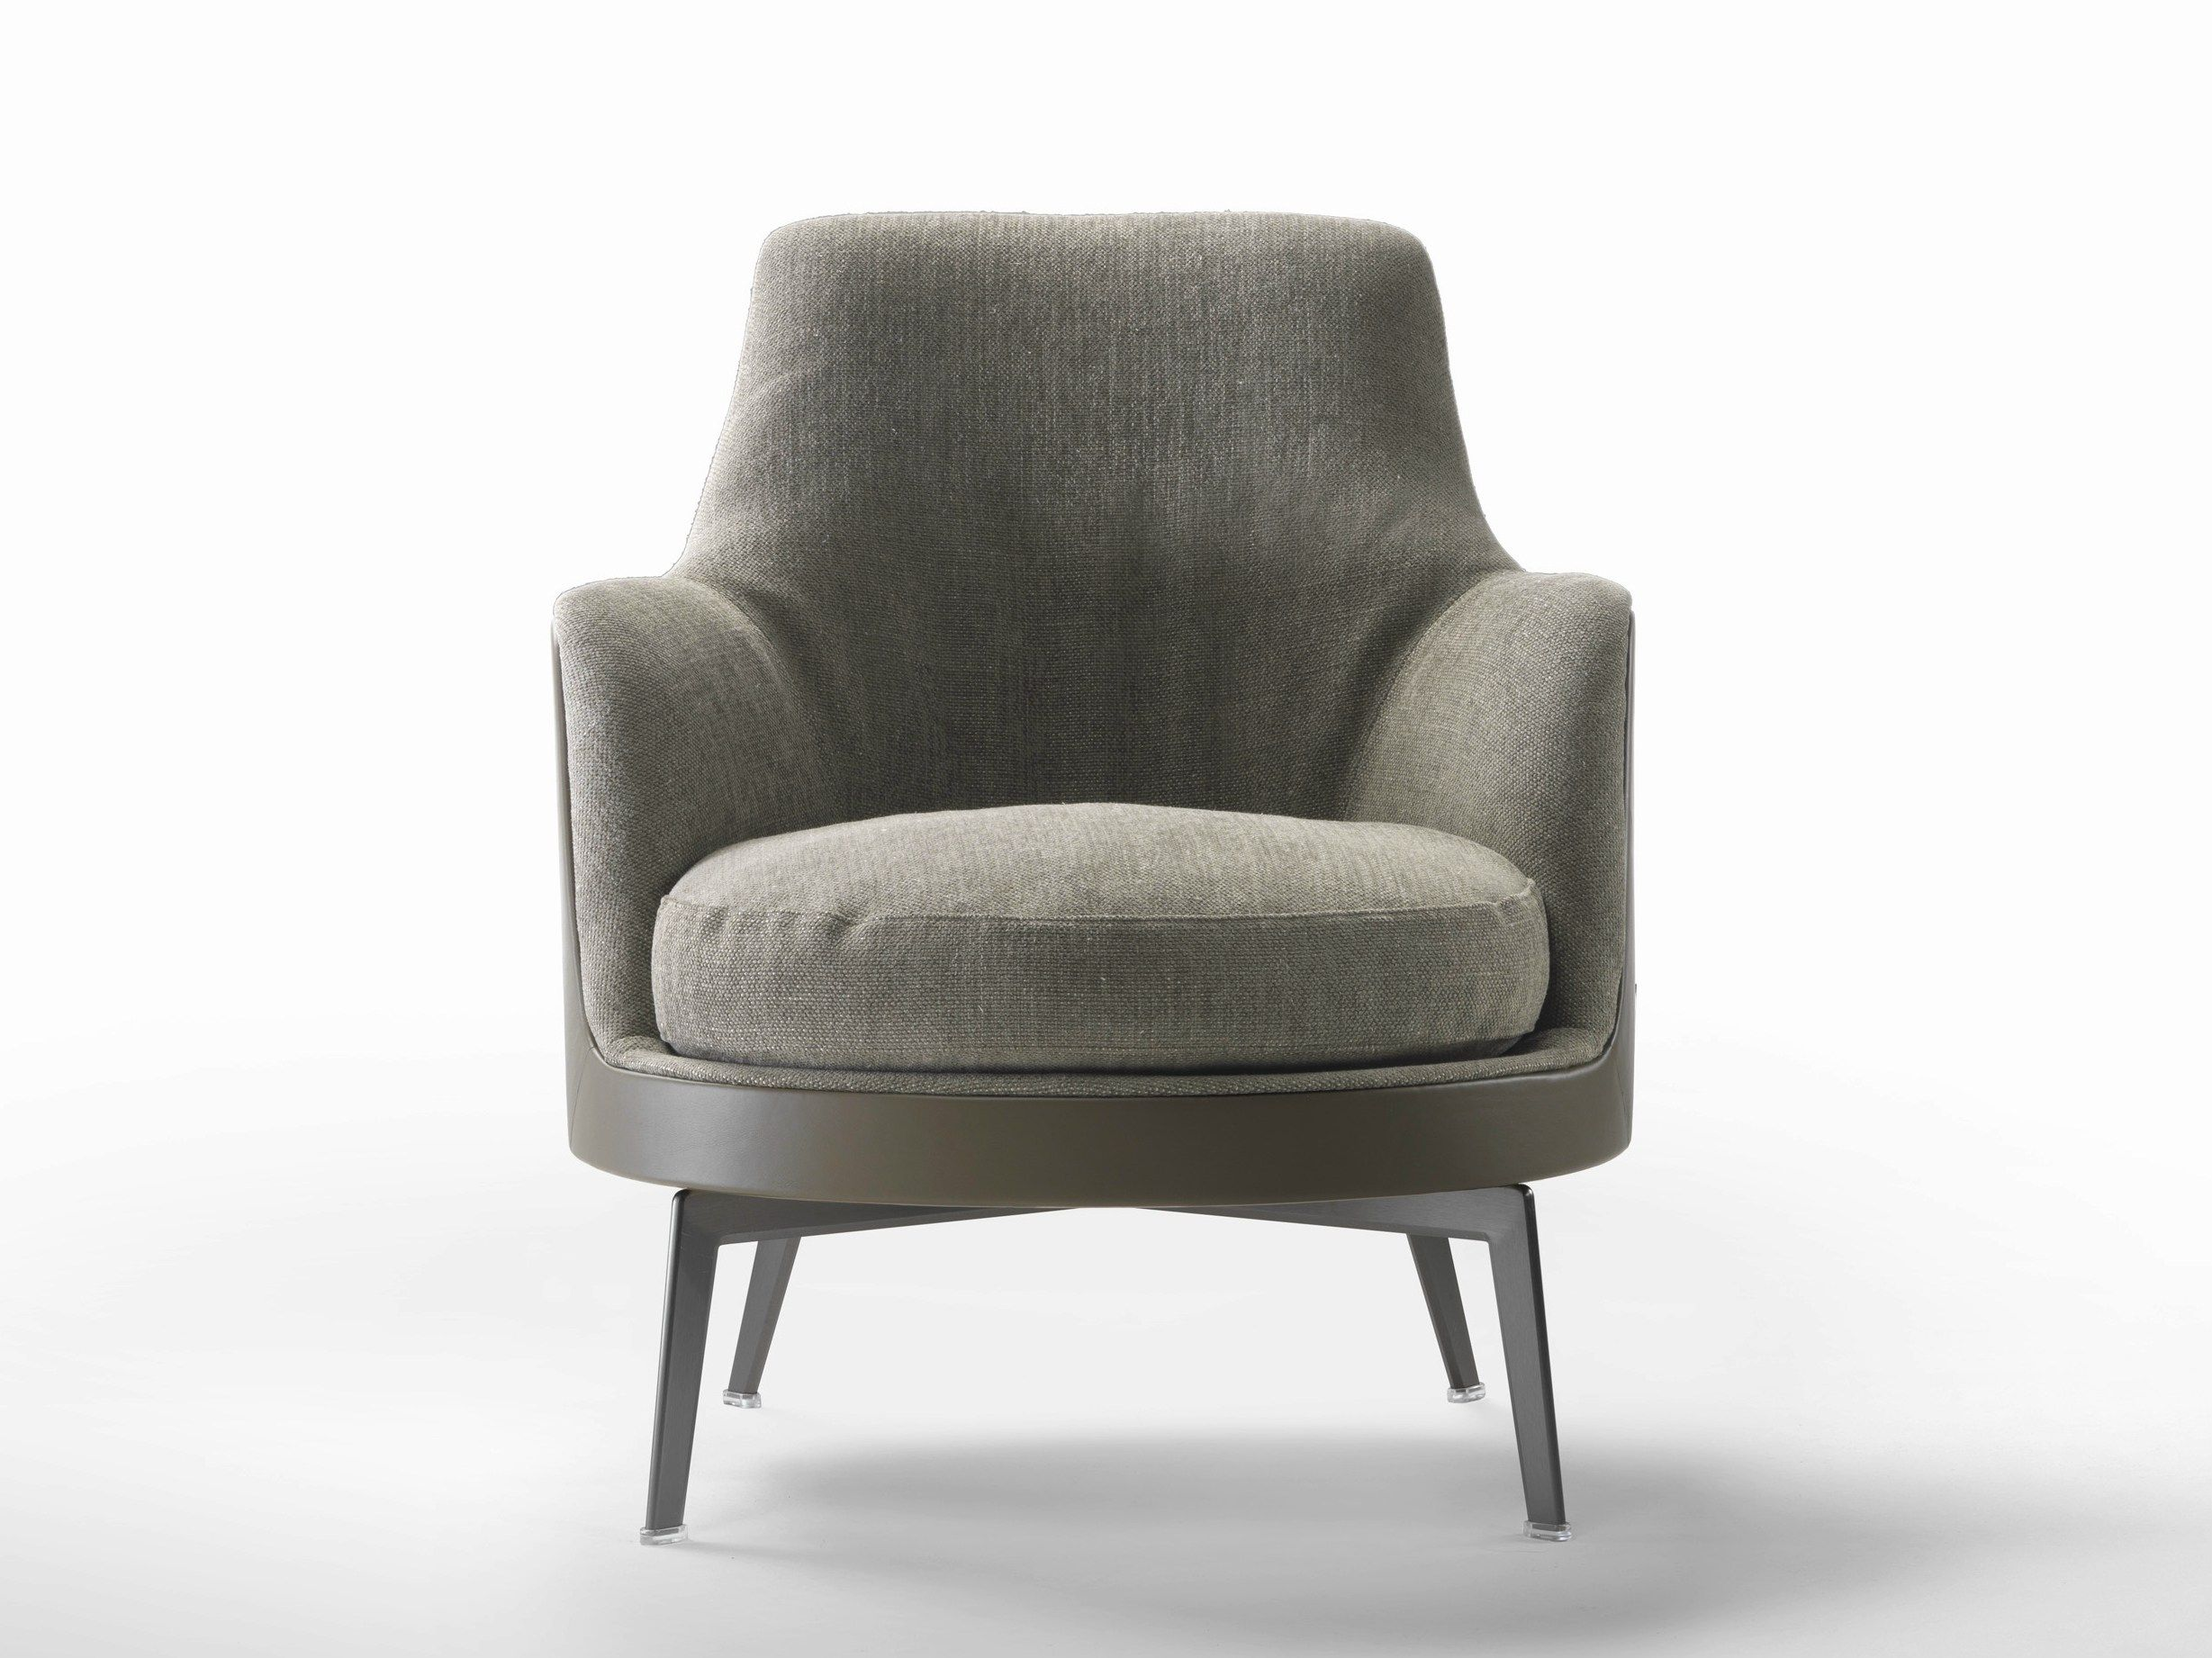 FORREST SOFT Bergere armchair by Meridiani